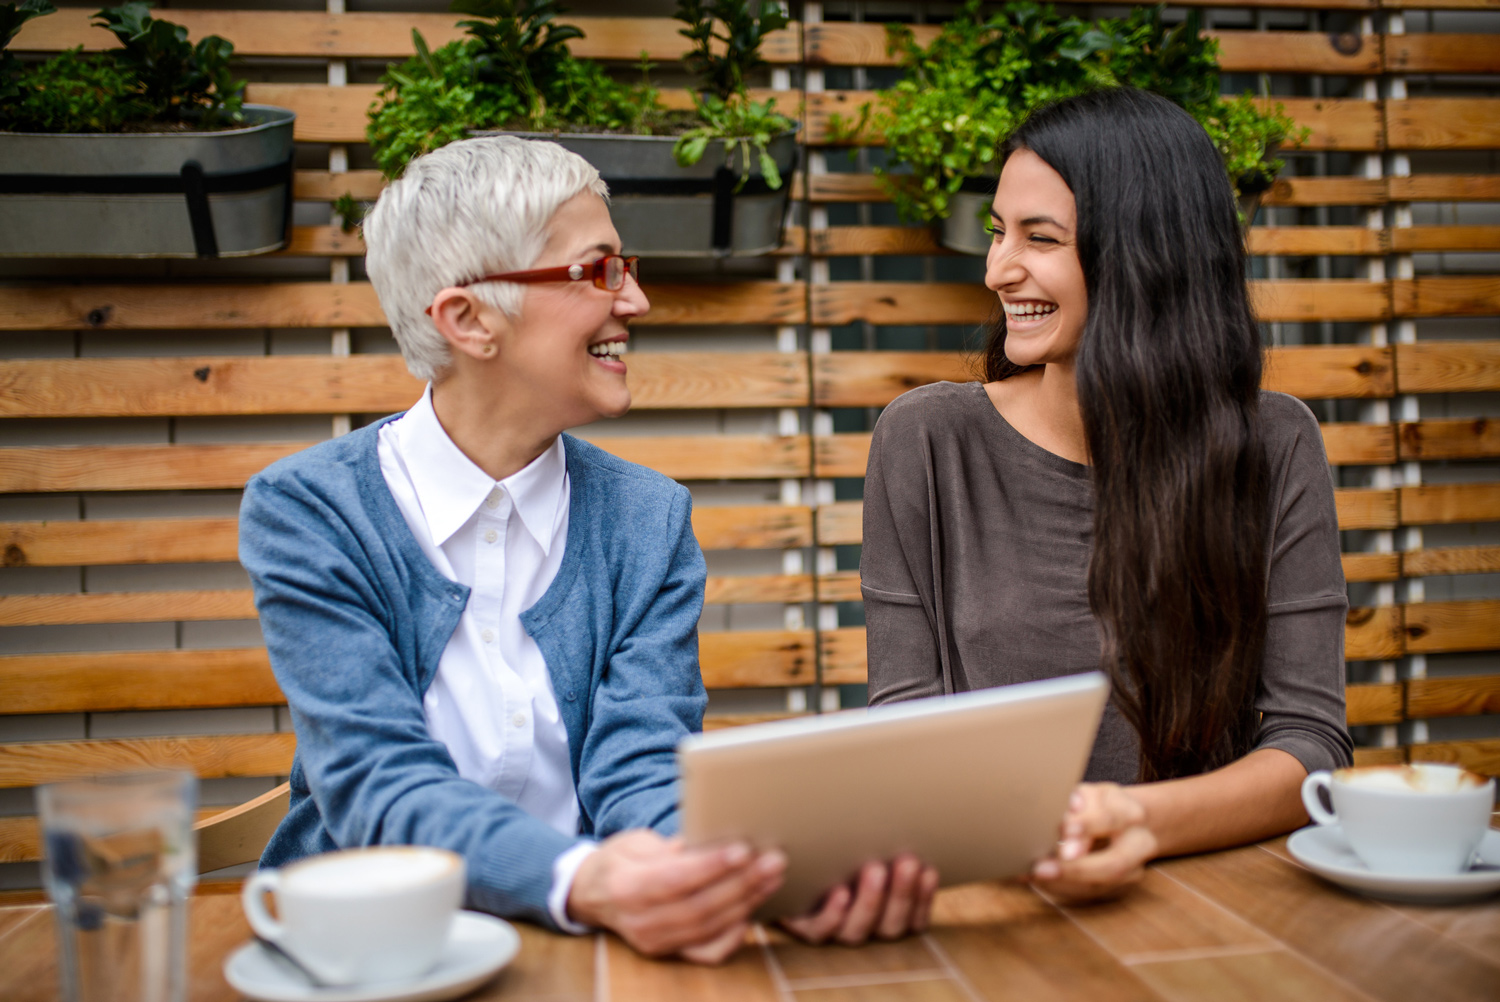 Women-mother-daughter-working-laughing-coffee-outsoors.jpg